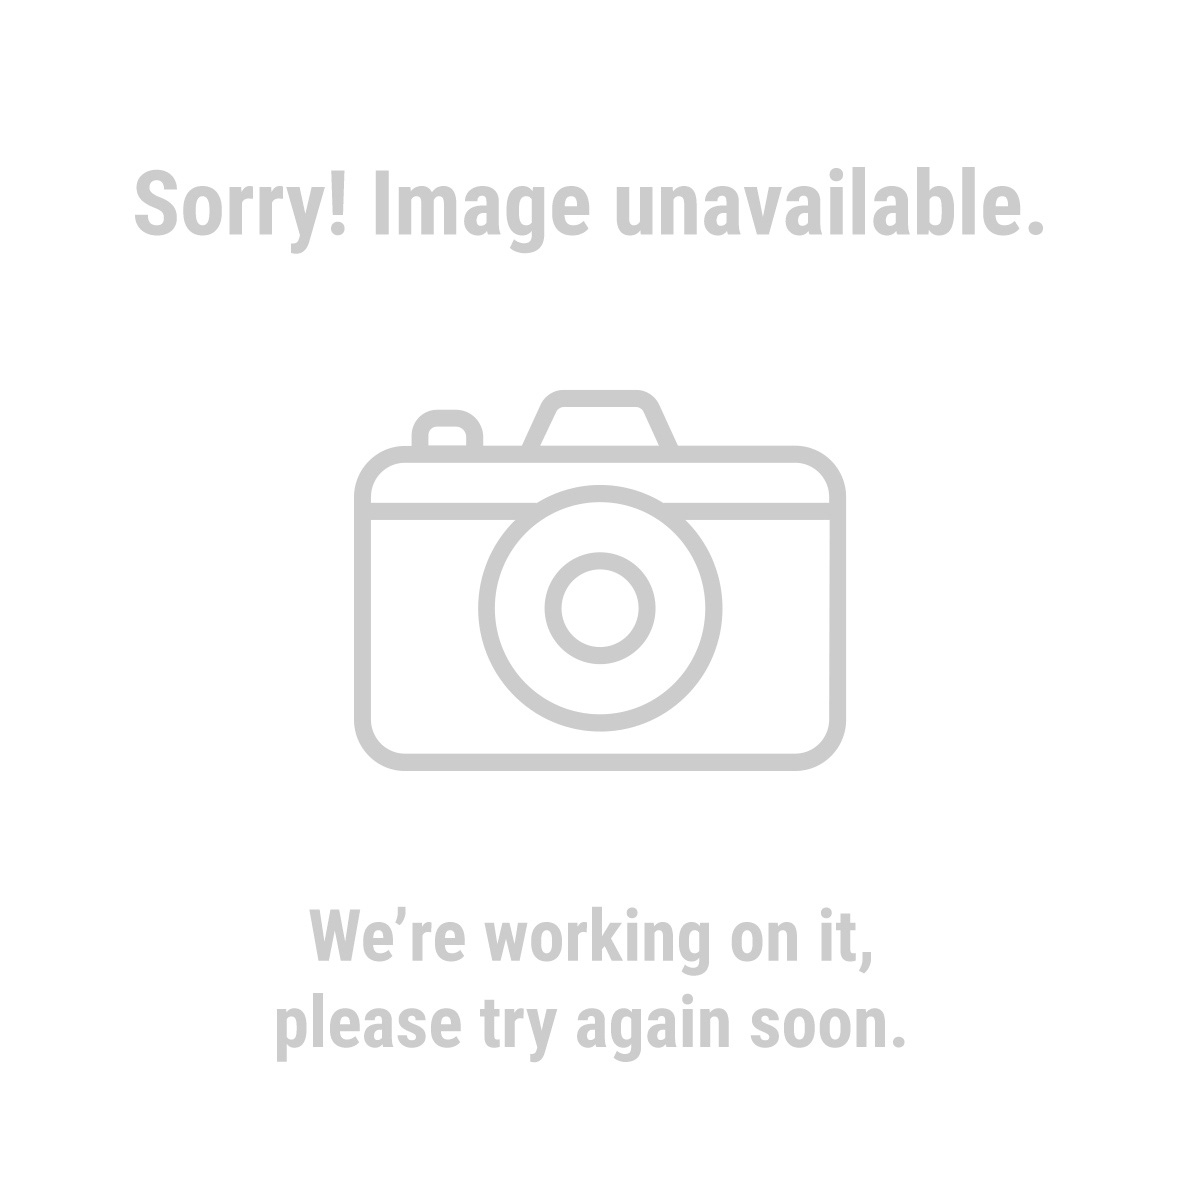 Central Pneumatic 61980 25 ft. x 1/4 in. Coiled Polyurethane Air Hose